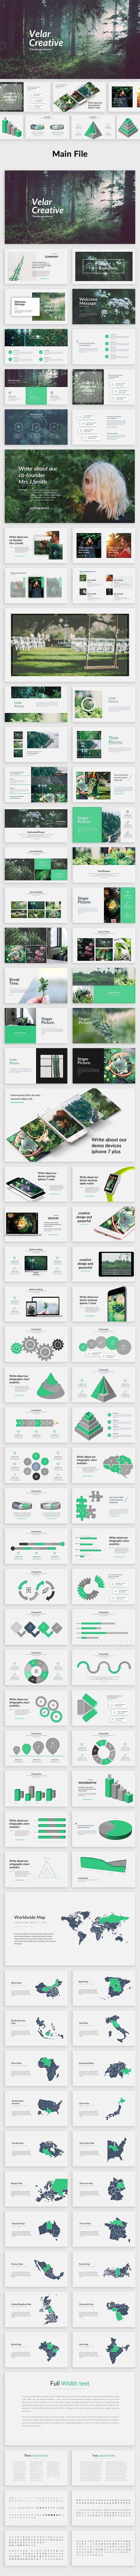 Velar - Creative Powerpoint Template